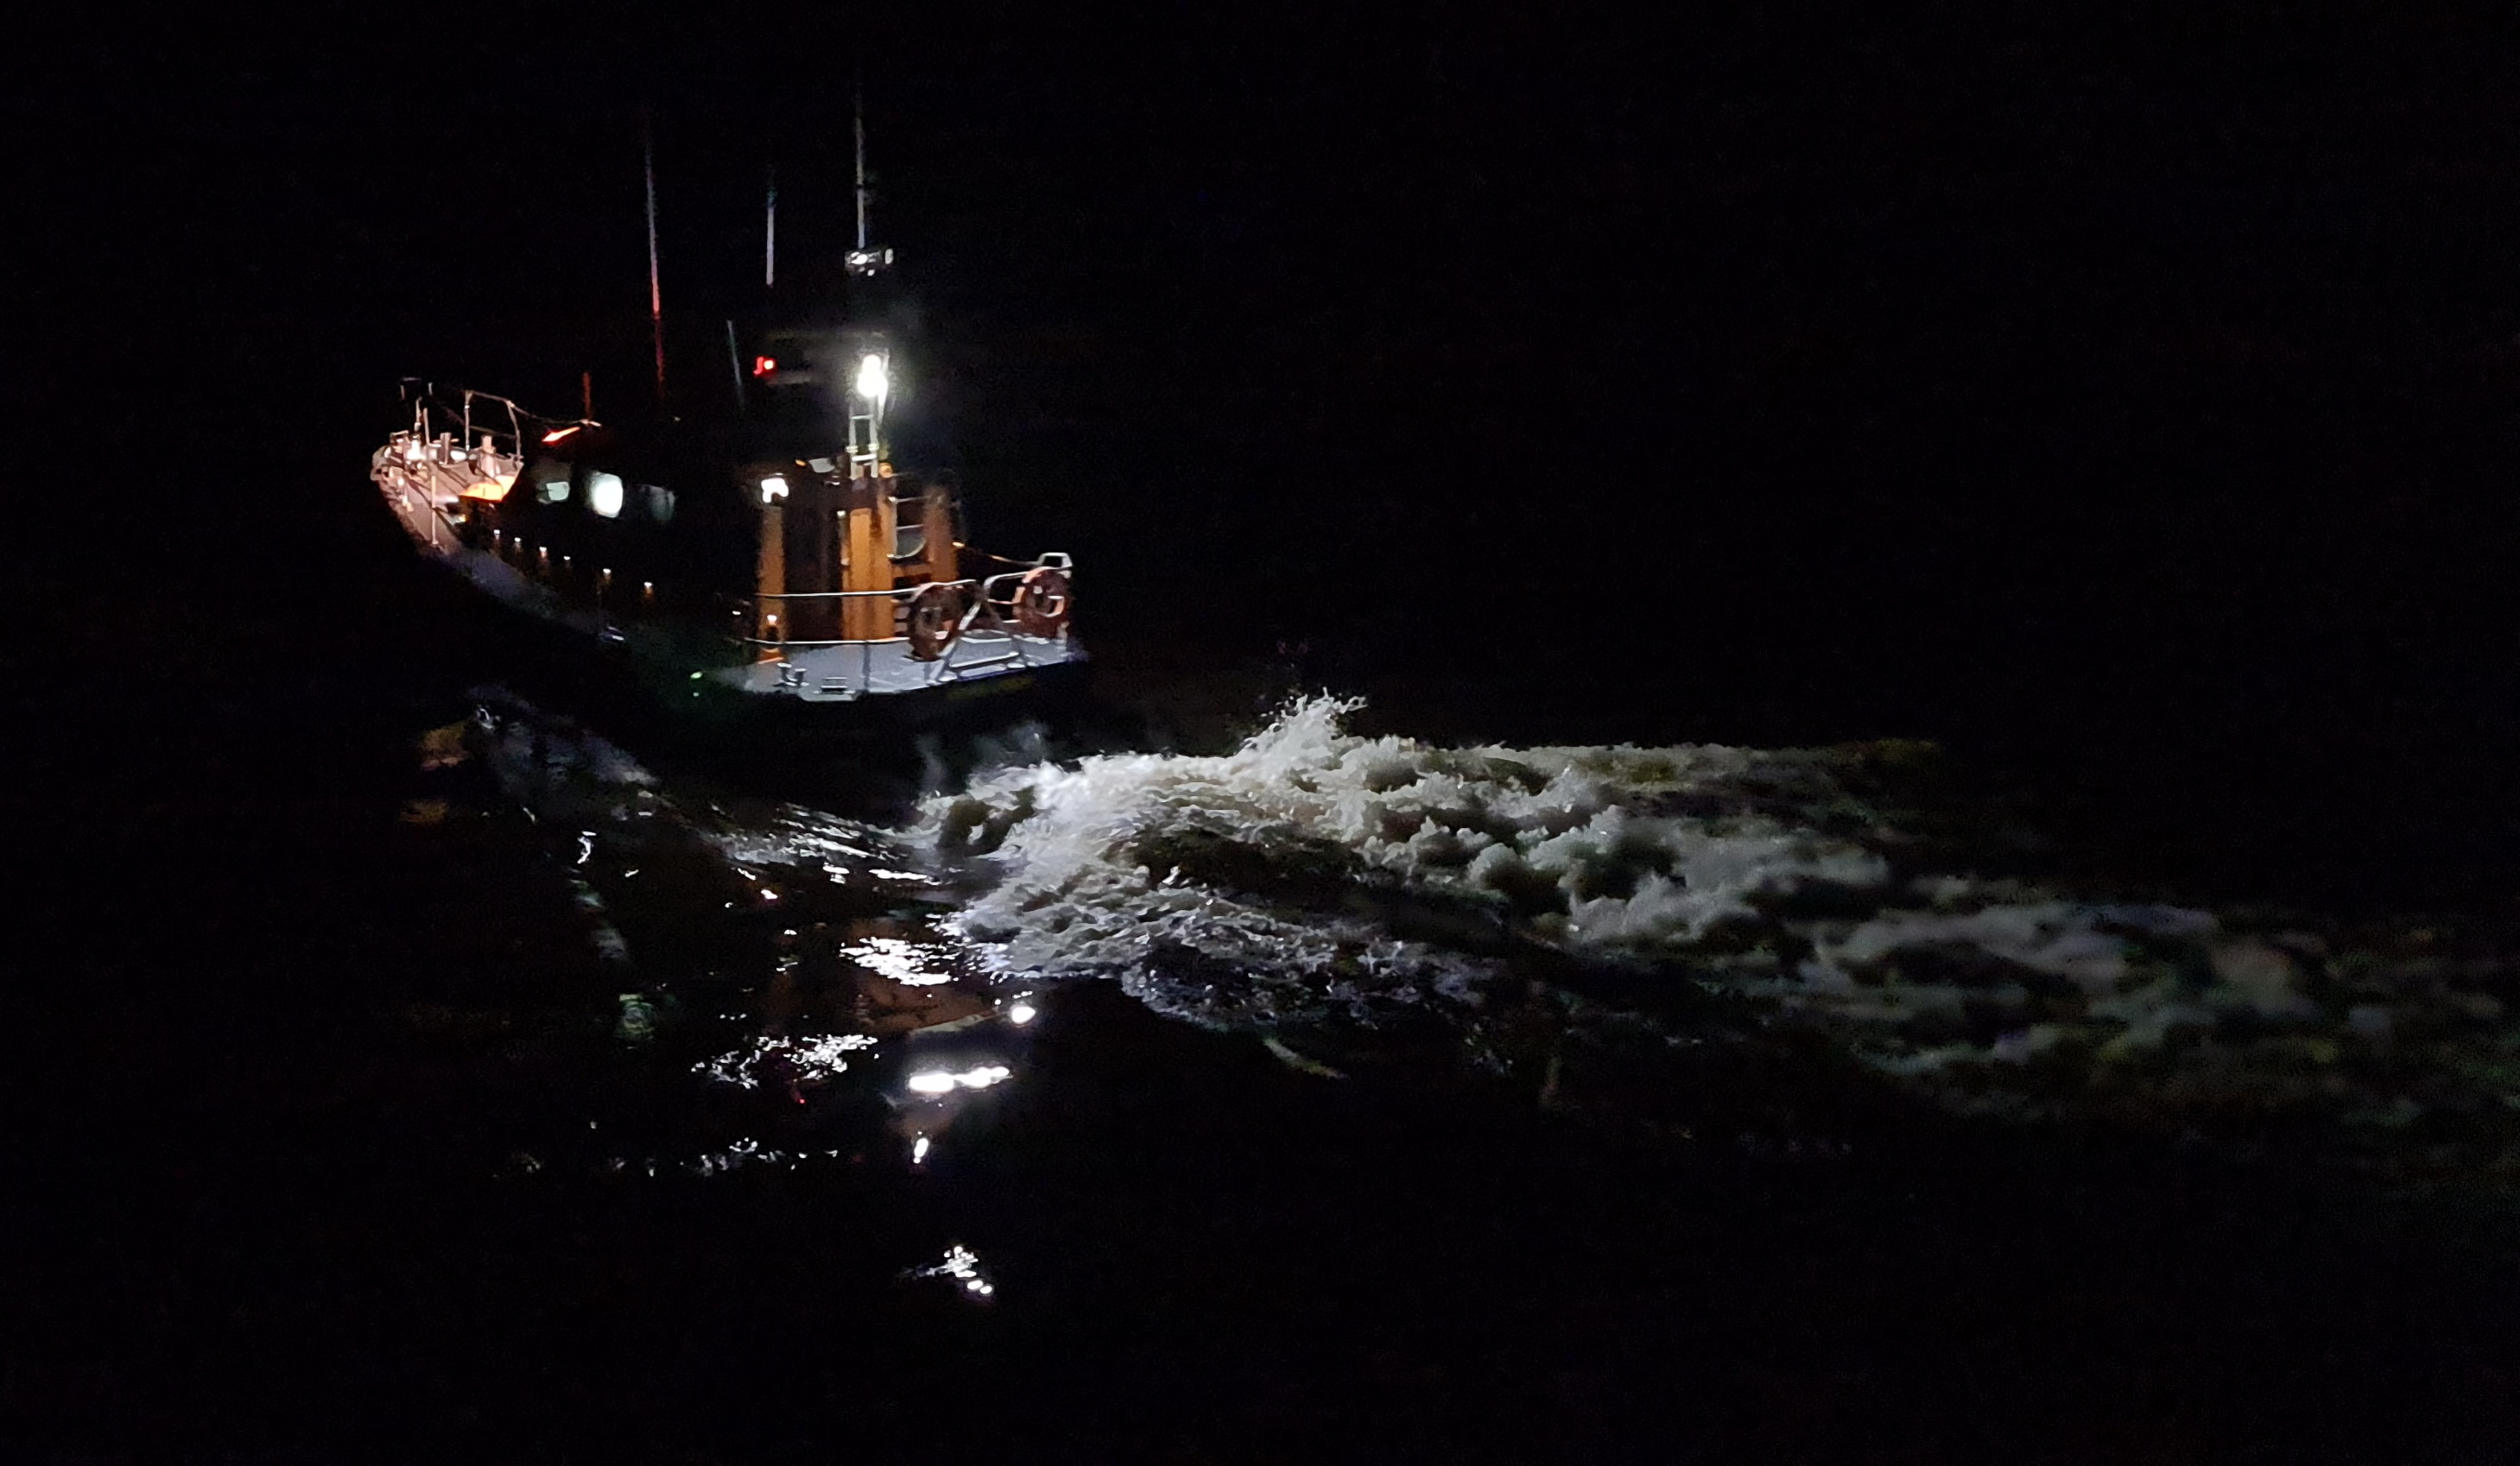 Shannon class all-weather lifeboat Elizabeth and Gertrude Allan launching in darkness to vessel aground